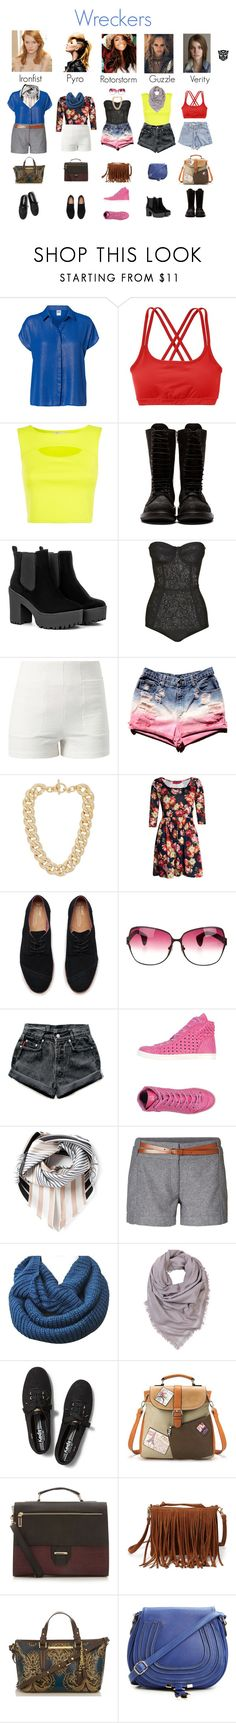 """""""newbies"""" by femme-mecha ❤ liked on Polyvore featuring Vero Moda, Athleta, Cameo Rose, Rick Owens, Lost Society, Michael Kors, Boohoo, TOMS, Chrome Hearts and Levi's"""